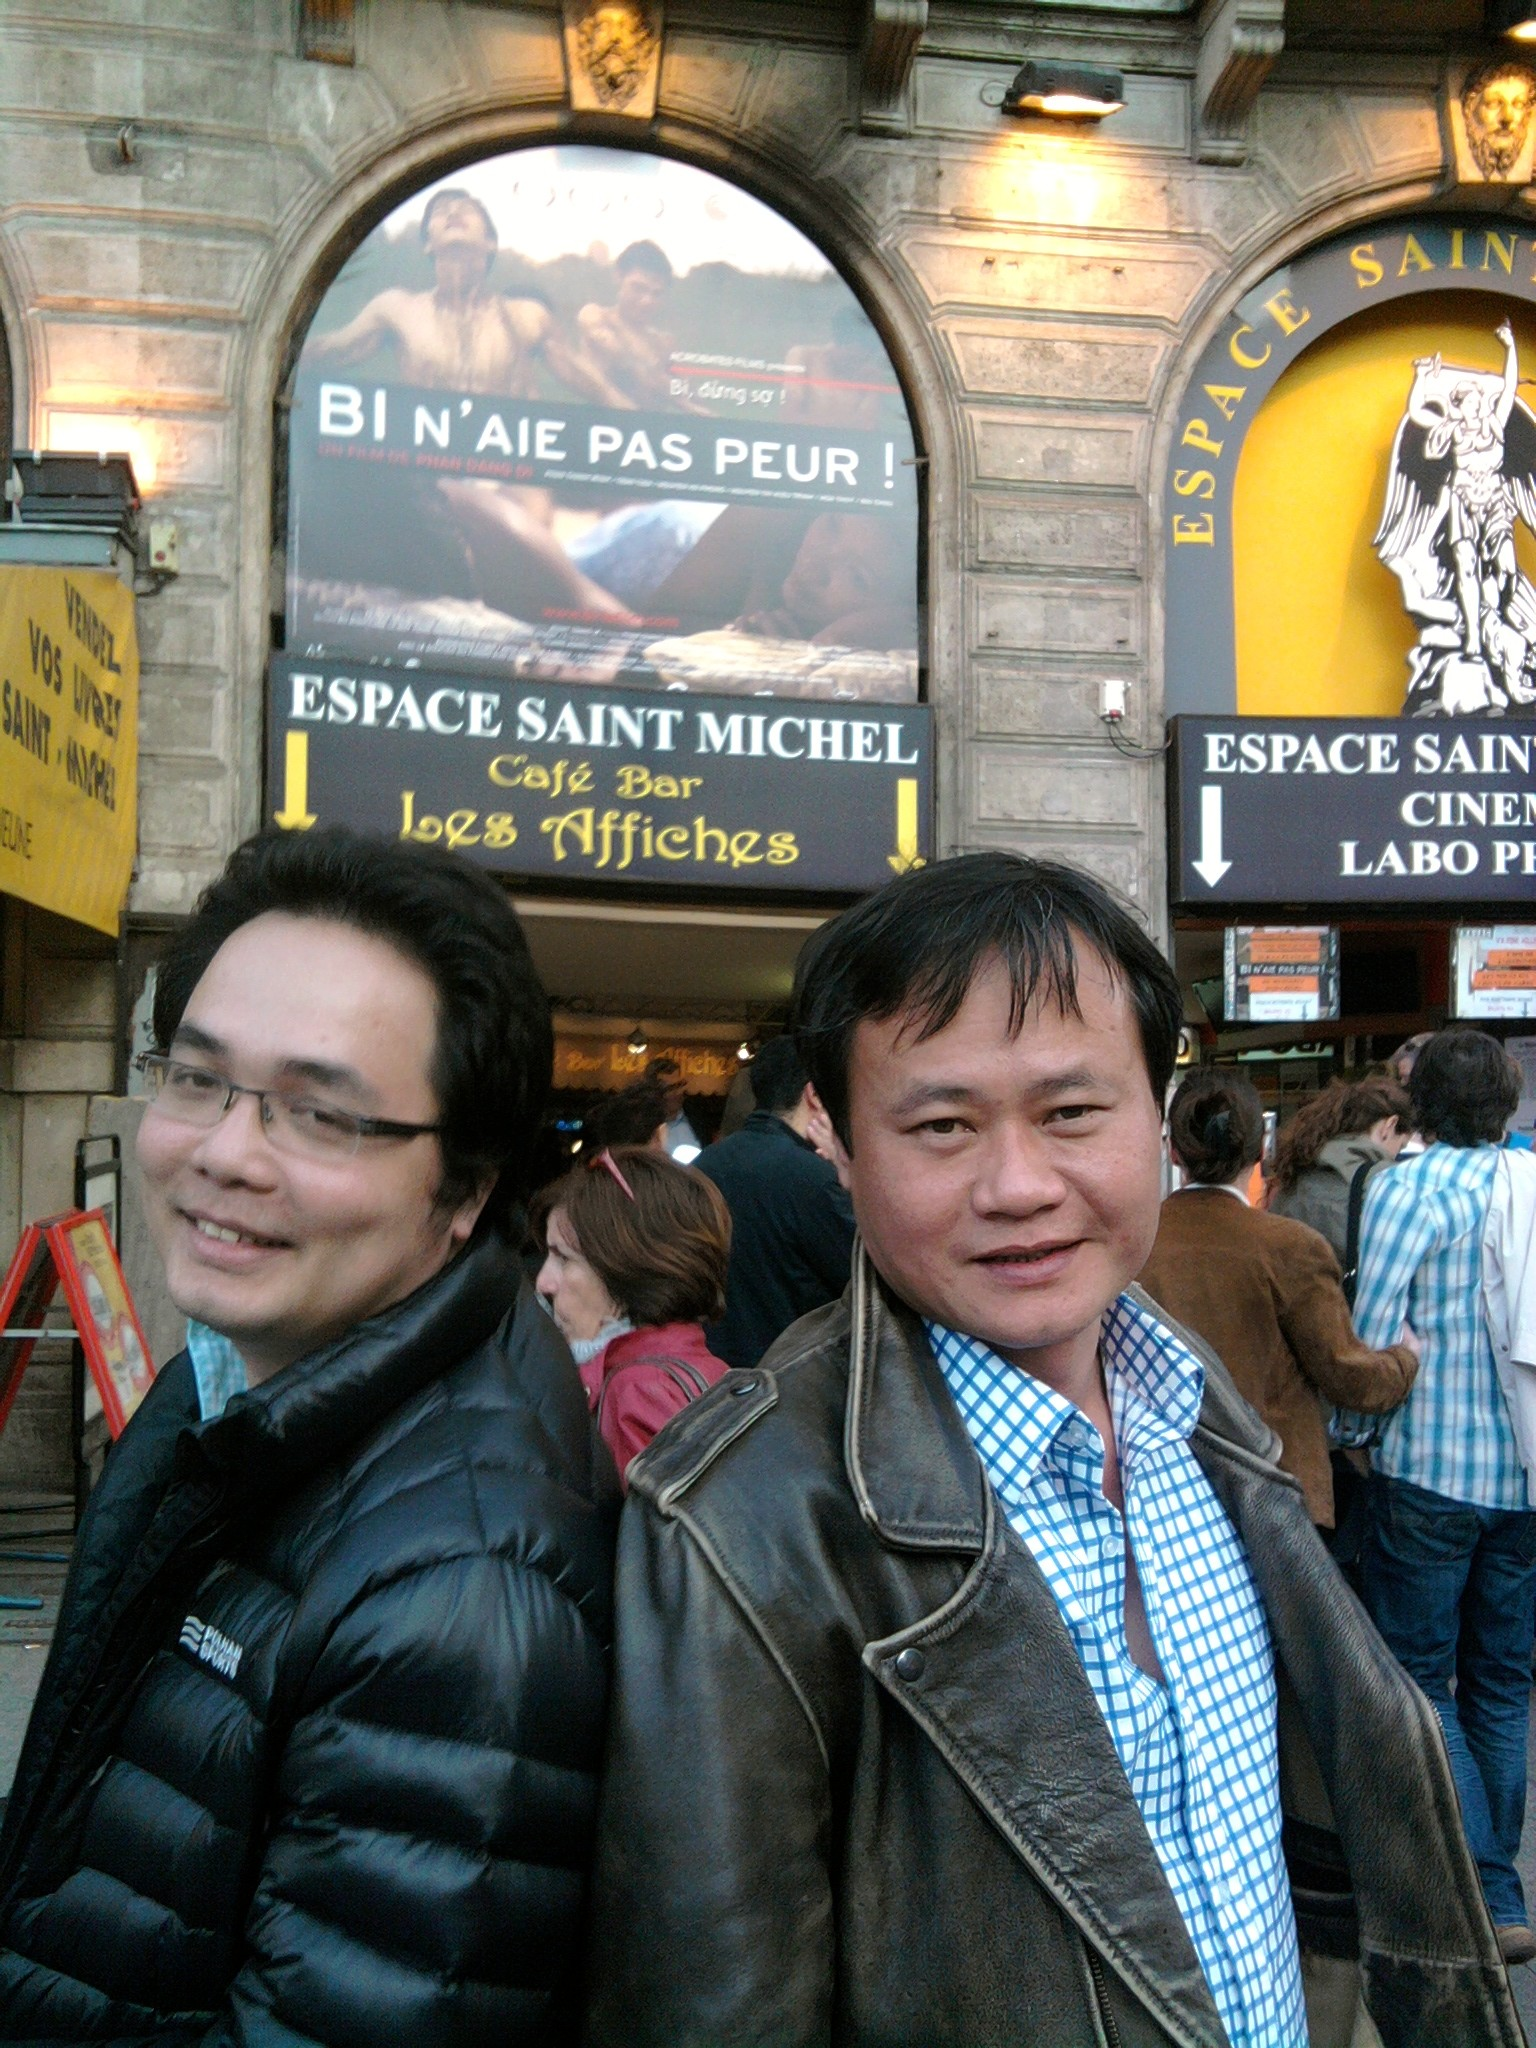 Phan Dang Di, director and Nguyen Ha Phong, actor, in a front of l'Espace Saint Michel in Paris in march 2012 for the french release of the movie. ©Arnaud Soulier